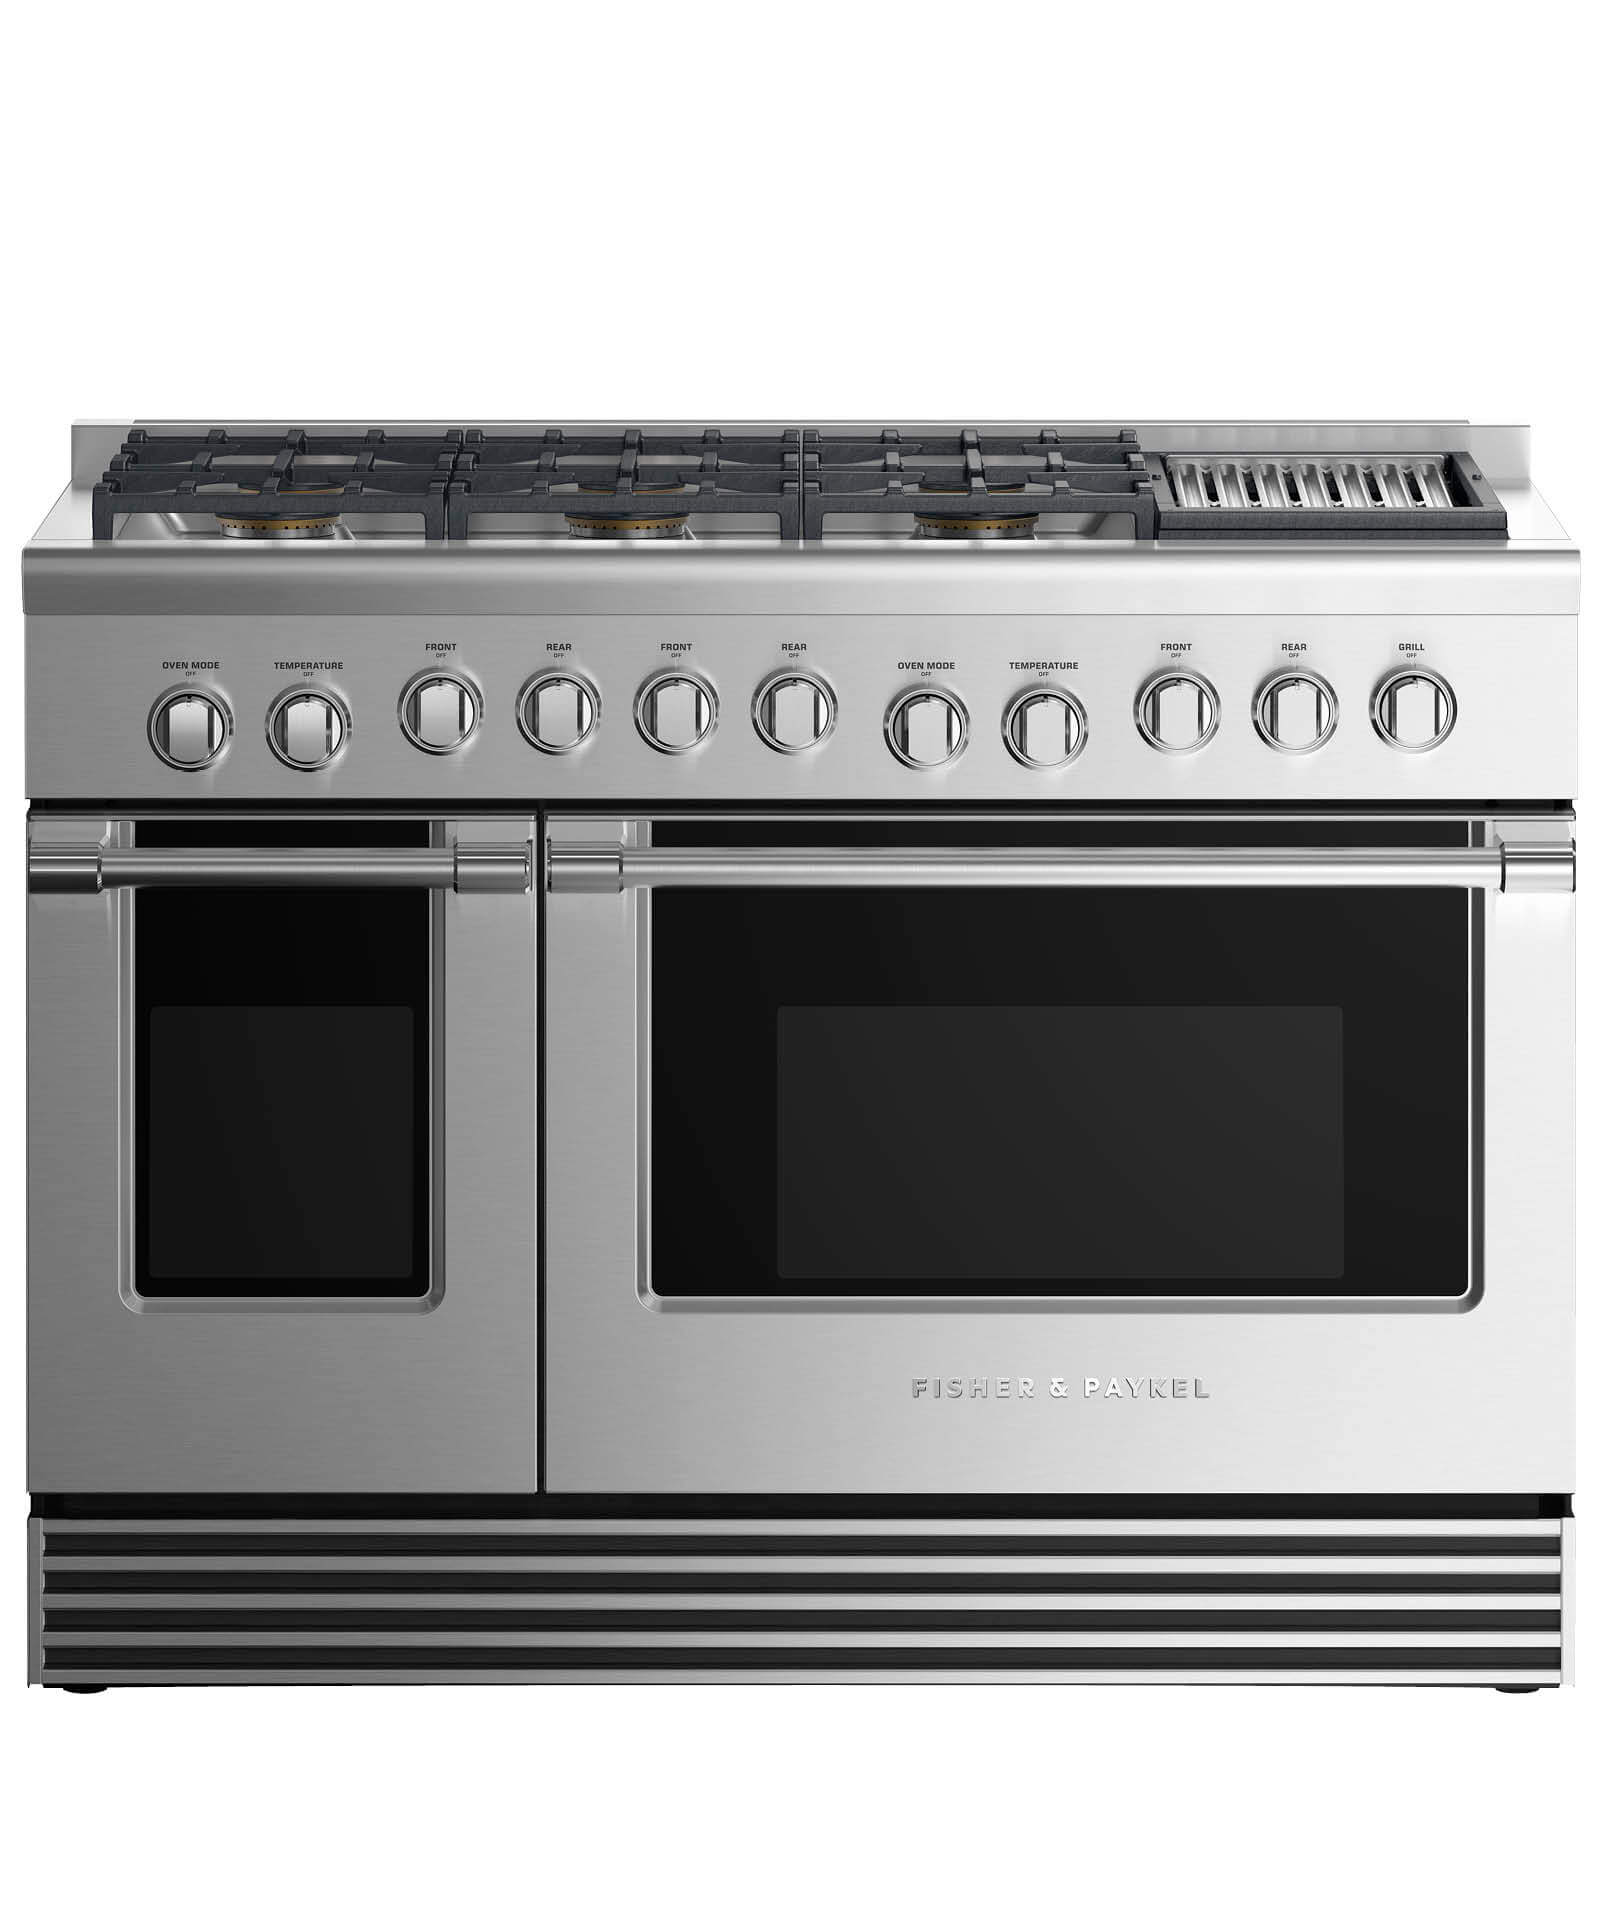 "Fisher and Paykel Dual Fuel Range 48"", 6 Burners with Grill"